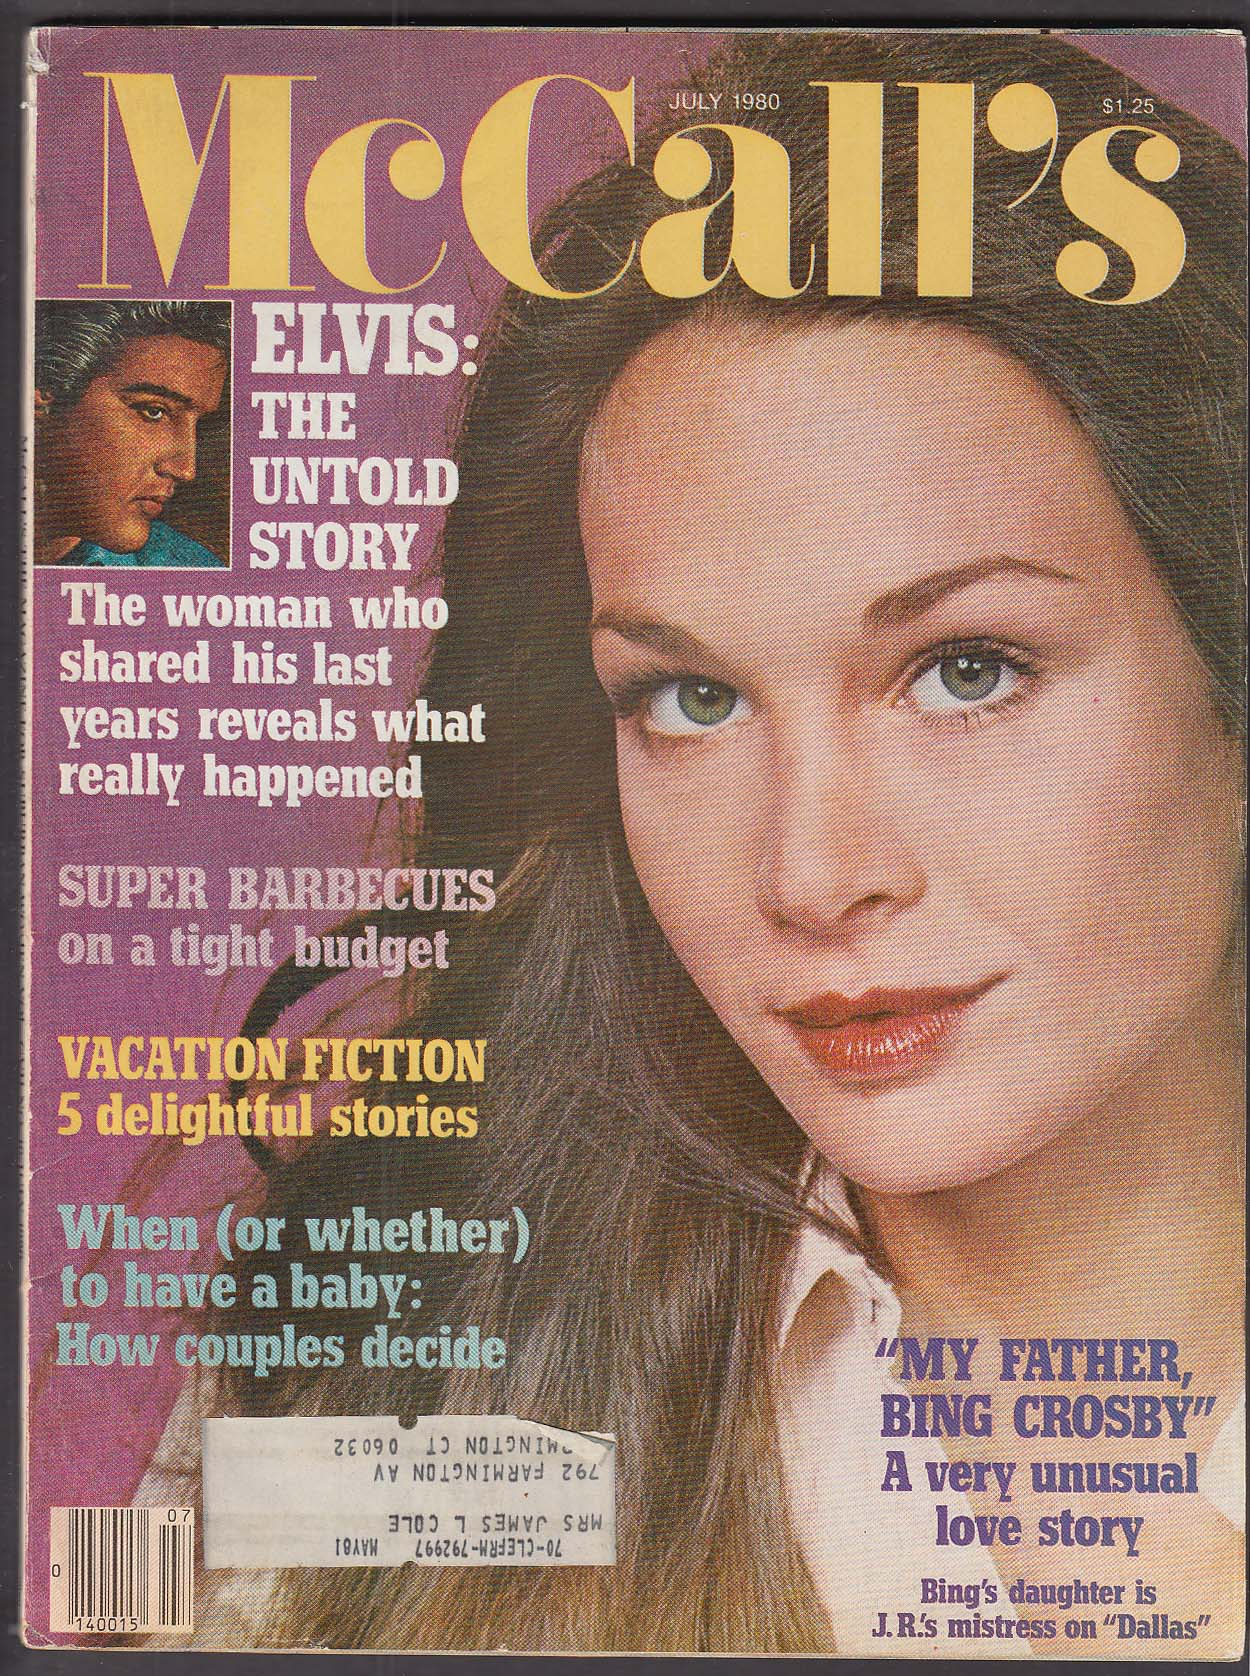 Image for McCALL'S Mary Crosby, Elvis Presley 7 1980